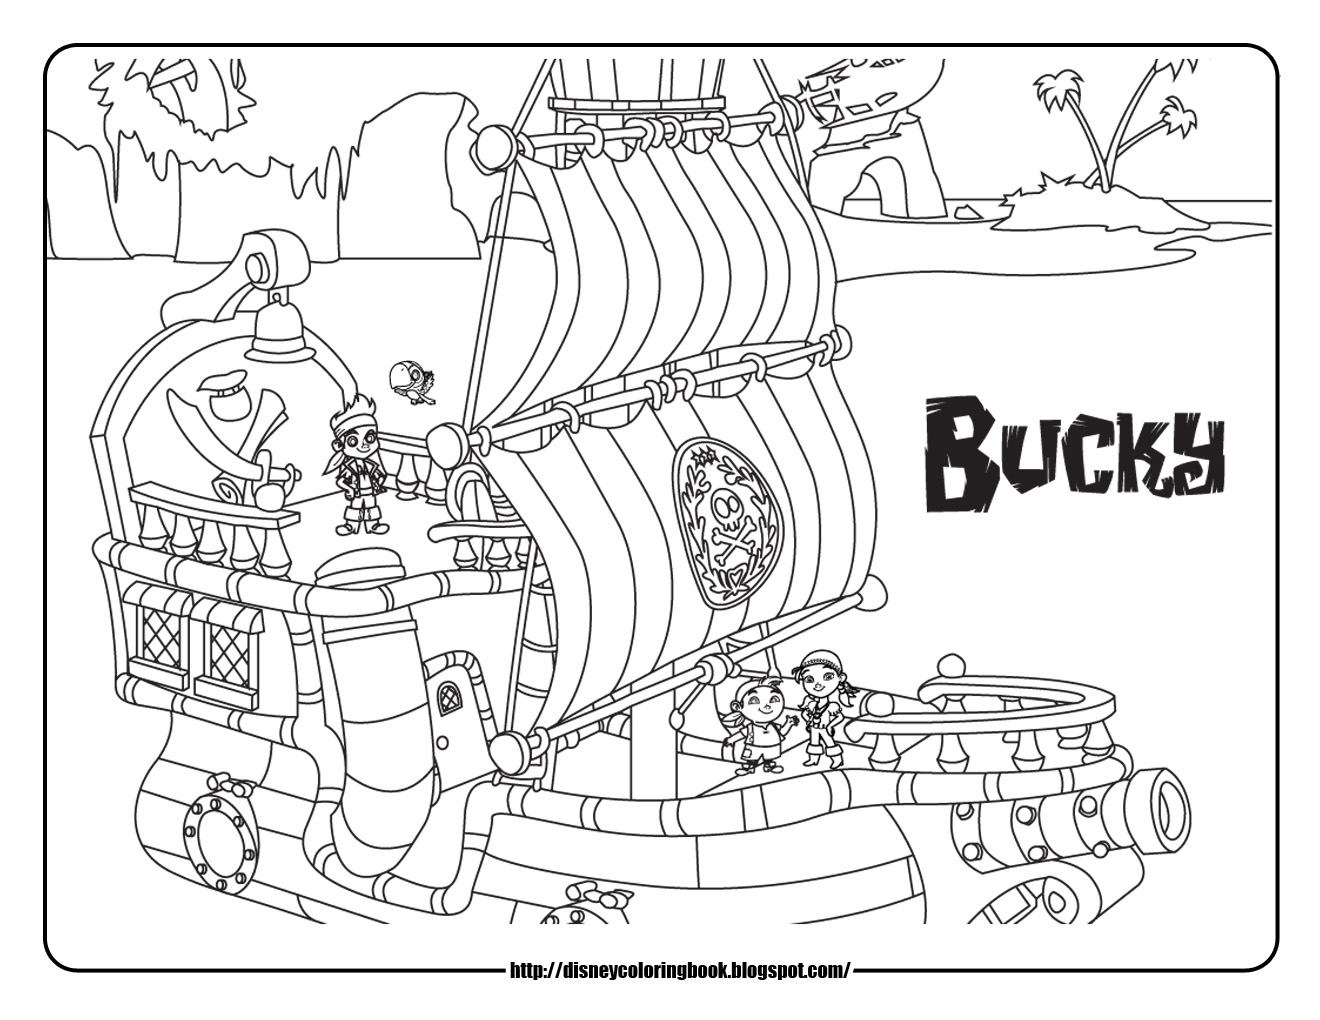 Jake and the Neverland Pirates 2 Free Disney Coloring